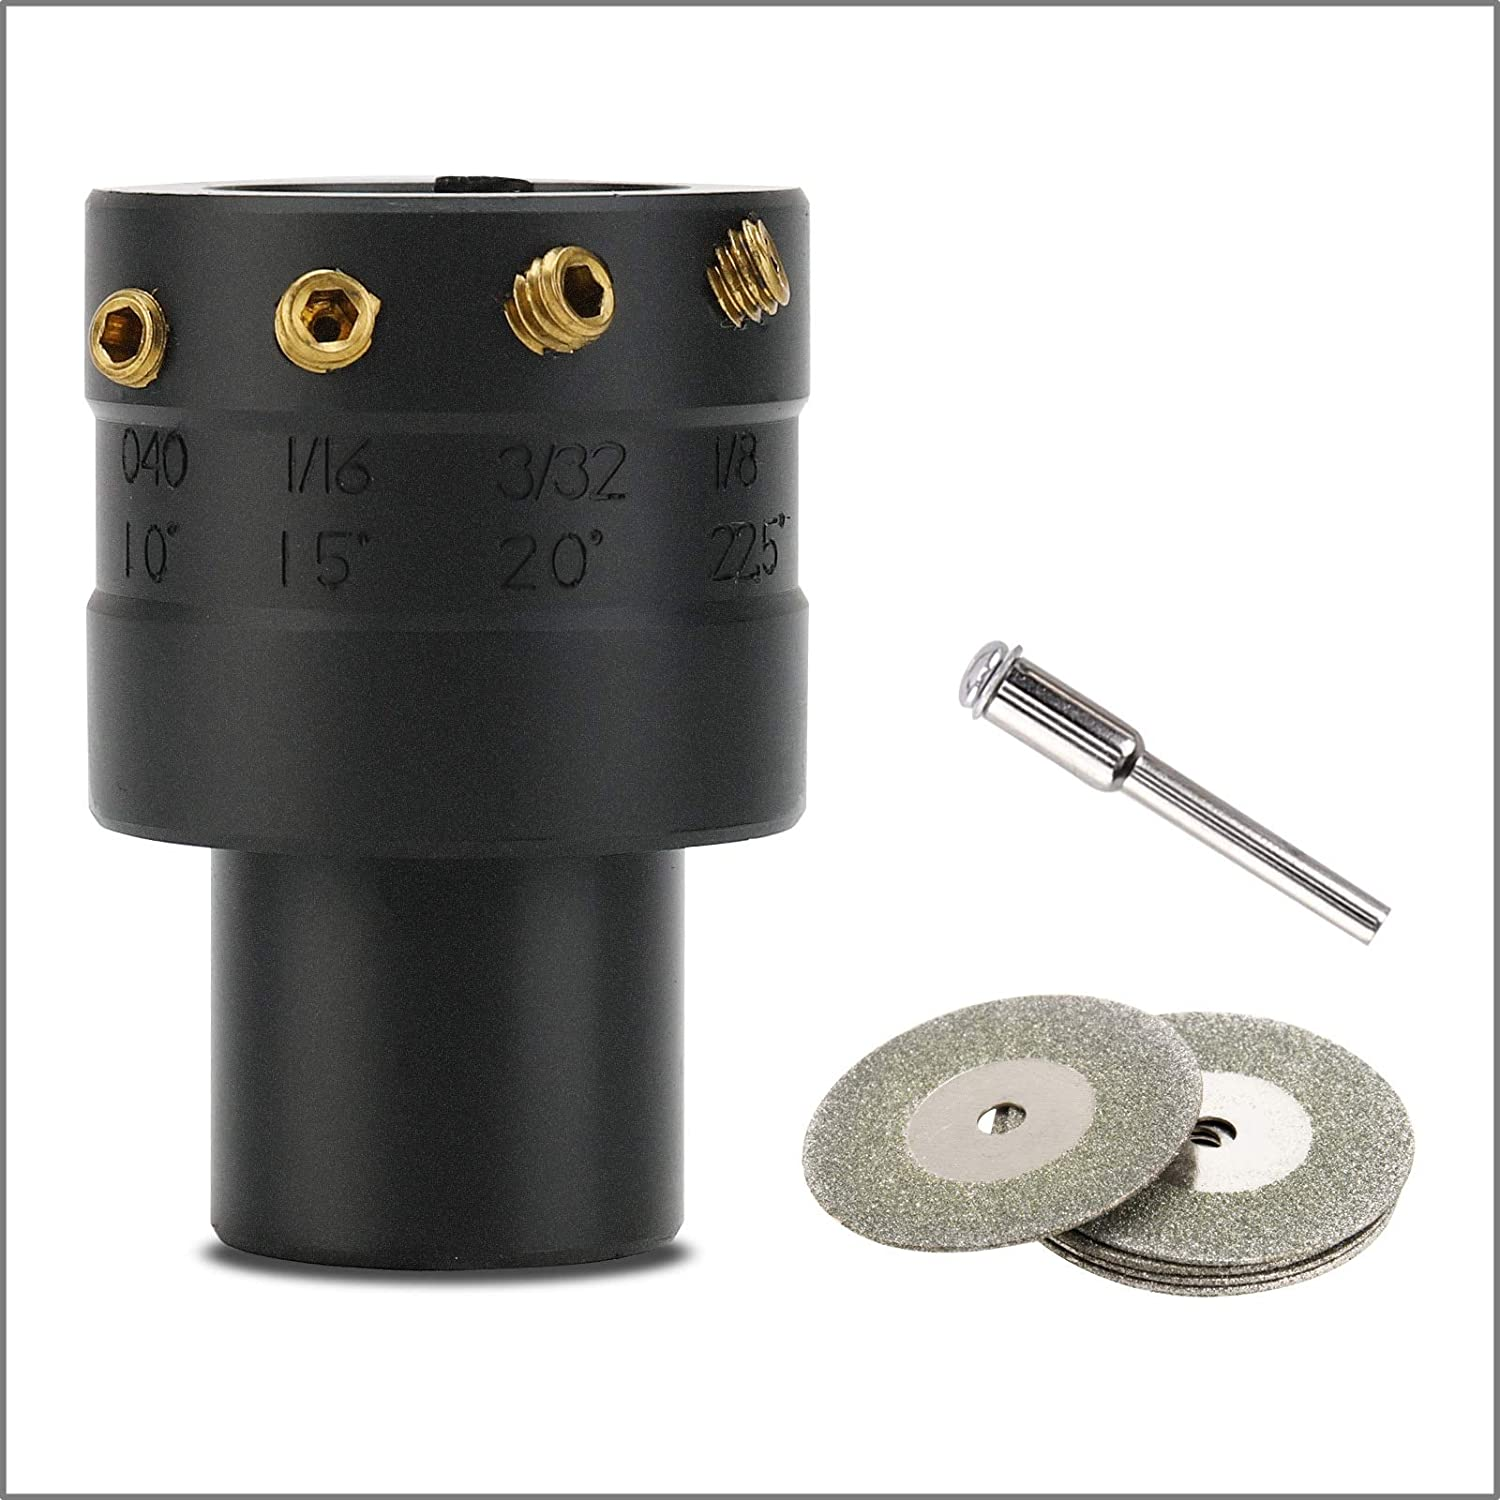 3mirrors TUNGSTEN ELECTRODE SHARPENER GRINDER TIG Welding Tool Cut-Off Port Multi-Angle /& Offsets 3//32 20/° 1//8 22.5/° 5X Diamond Wheel 1X Connecting Rod 1//16 15/° 0//40 10/°